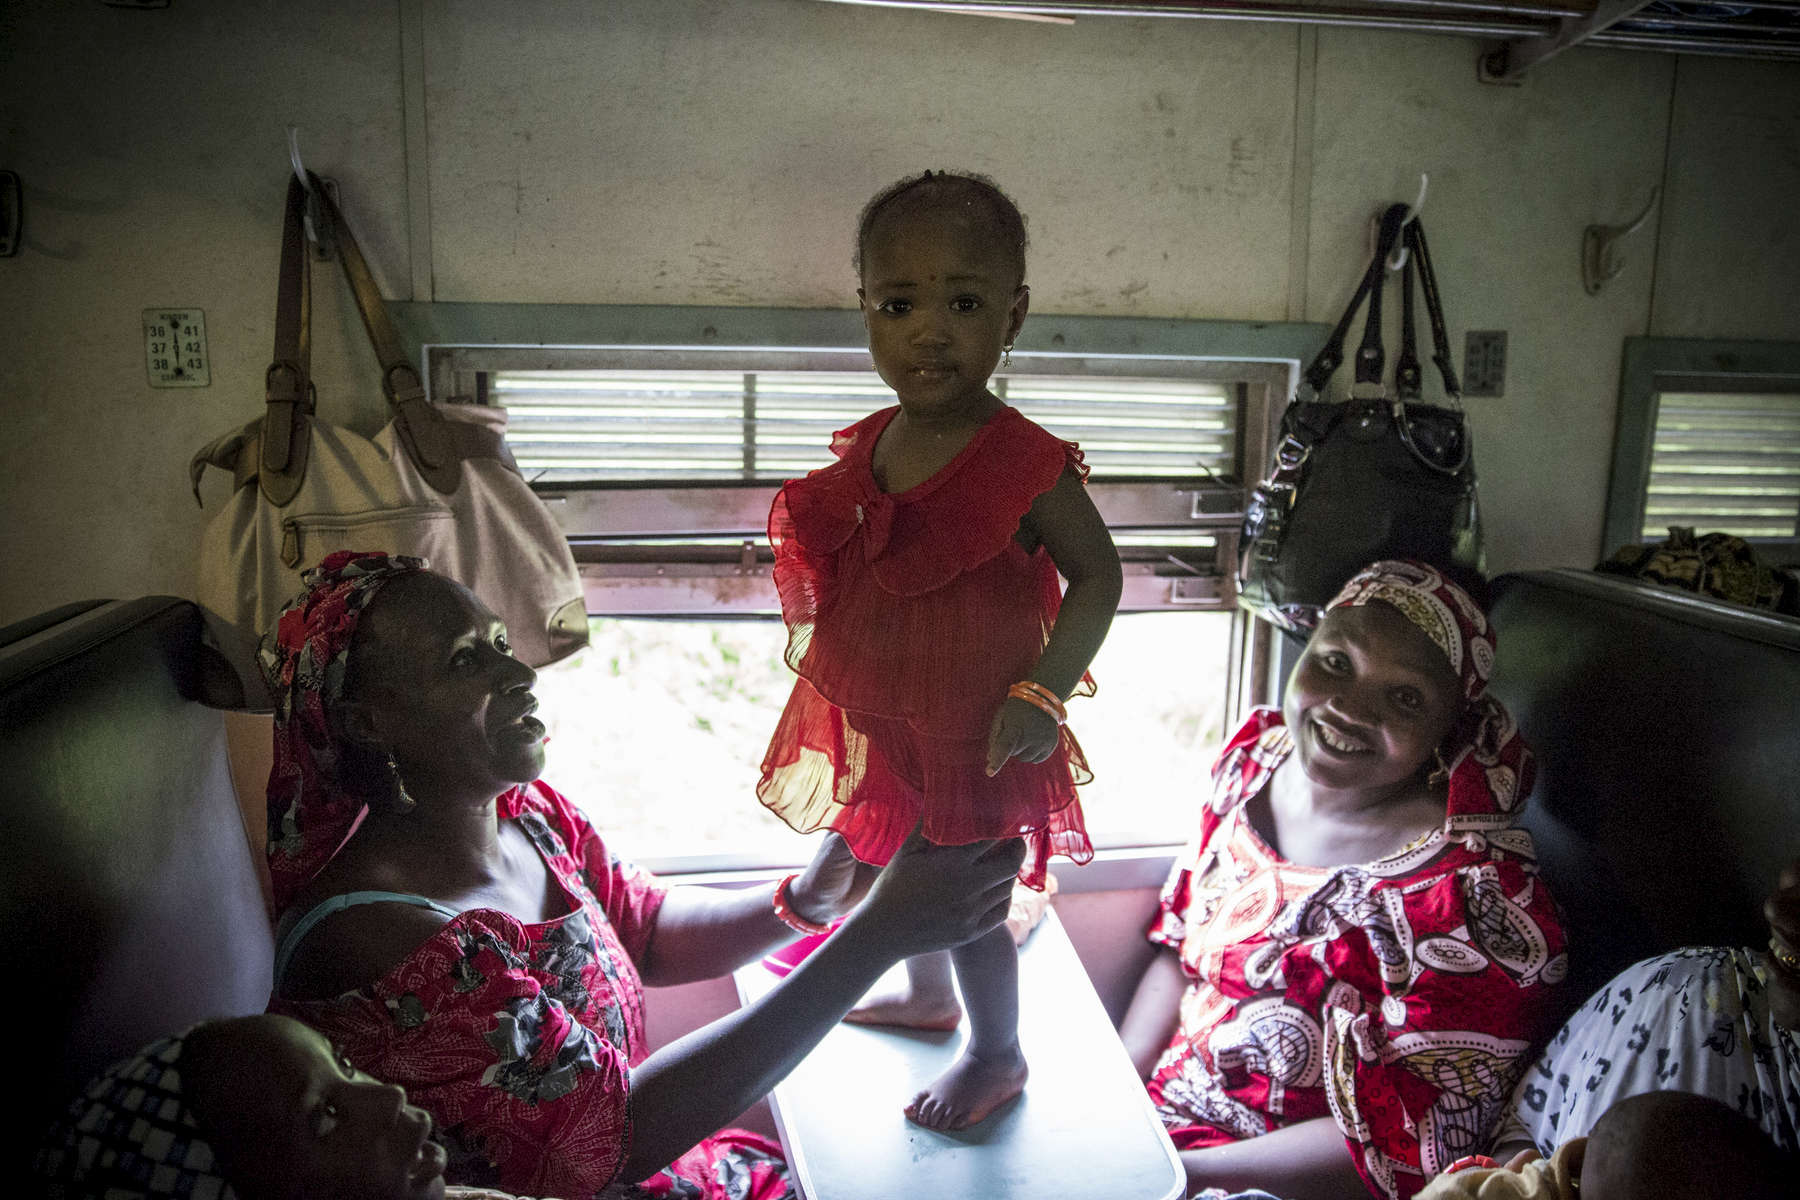 Aisha Lawan, the little girl in the red dress, takes the train from Lagos to Ibadan with her family.